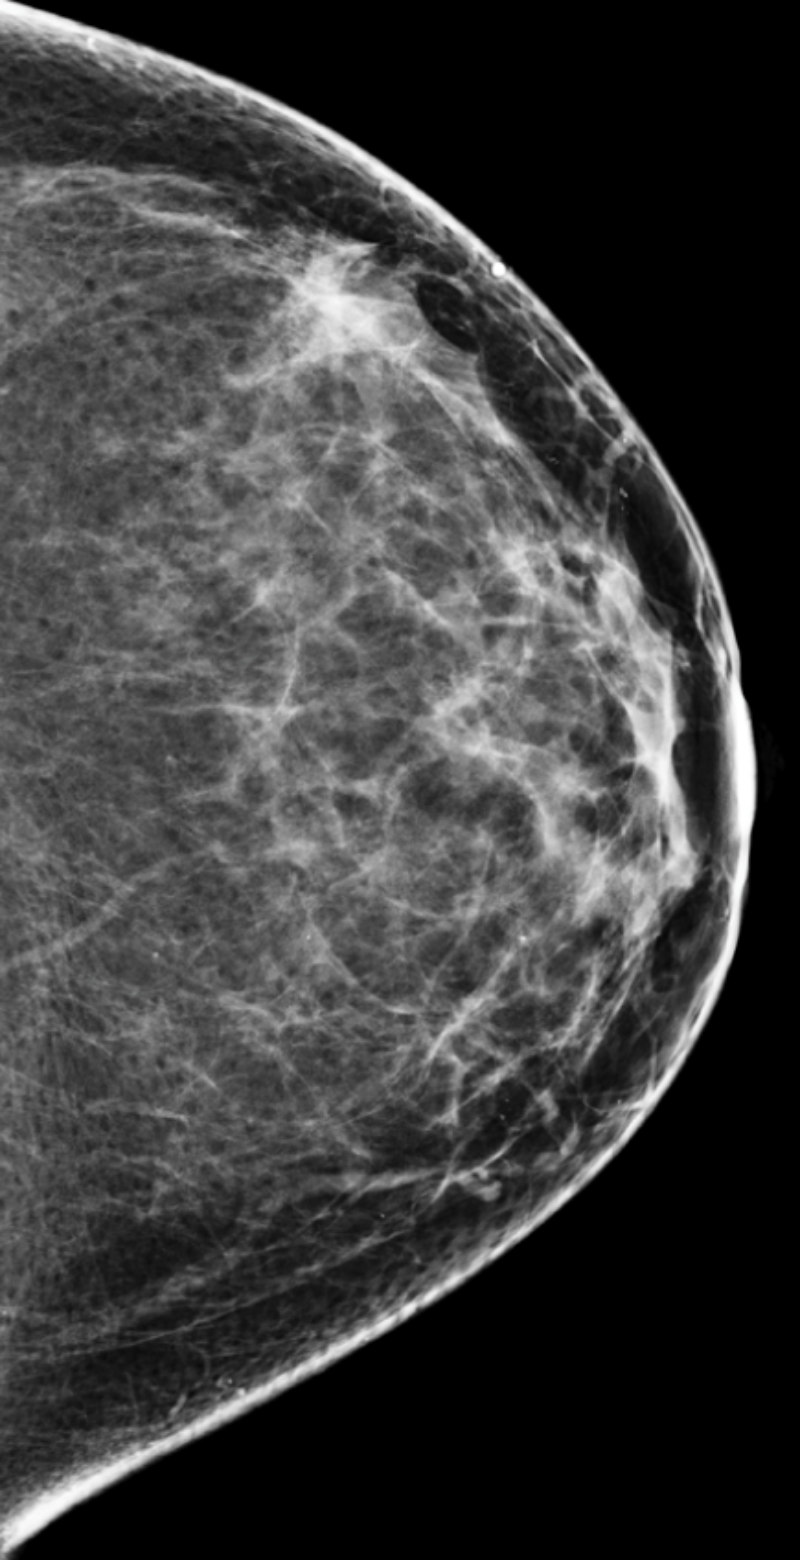 Mammogram with category b breast density